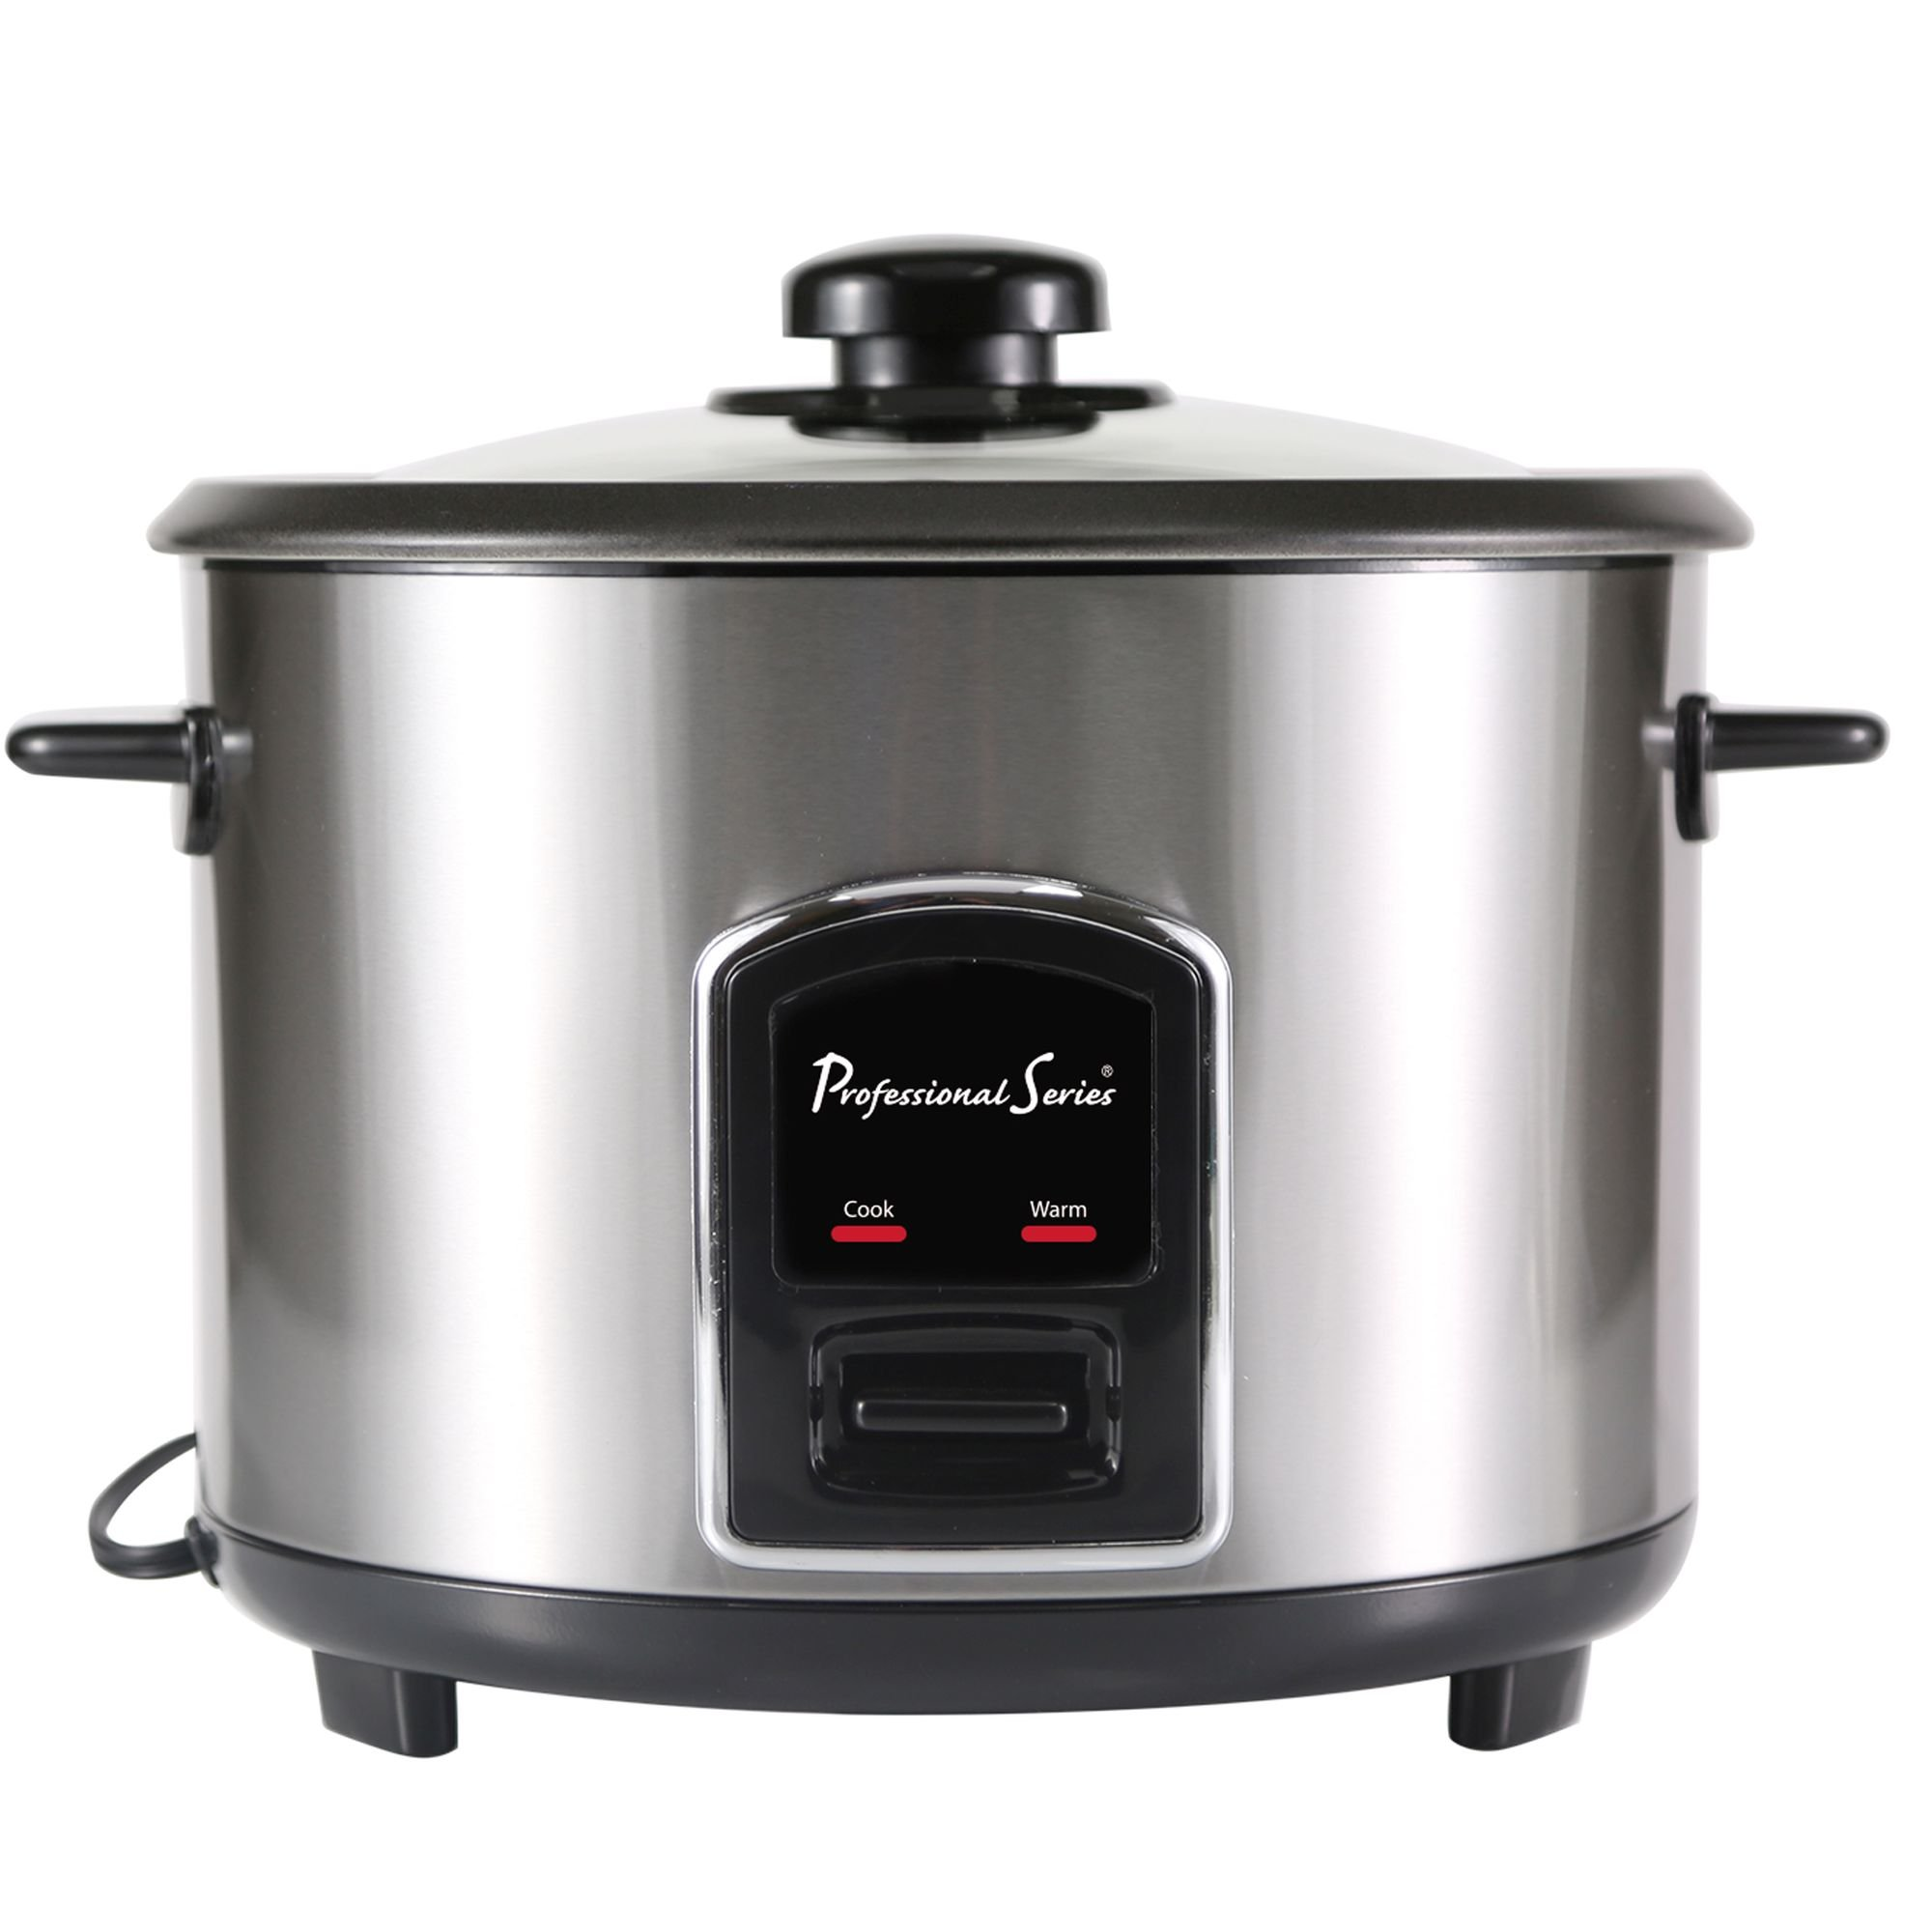 Continental Electric PS75068 Rice Cooker, 6-Cup, Silver